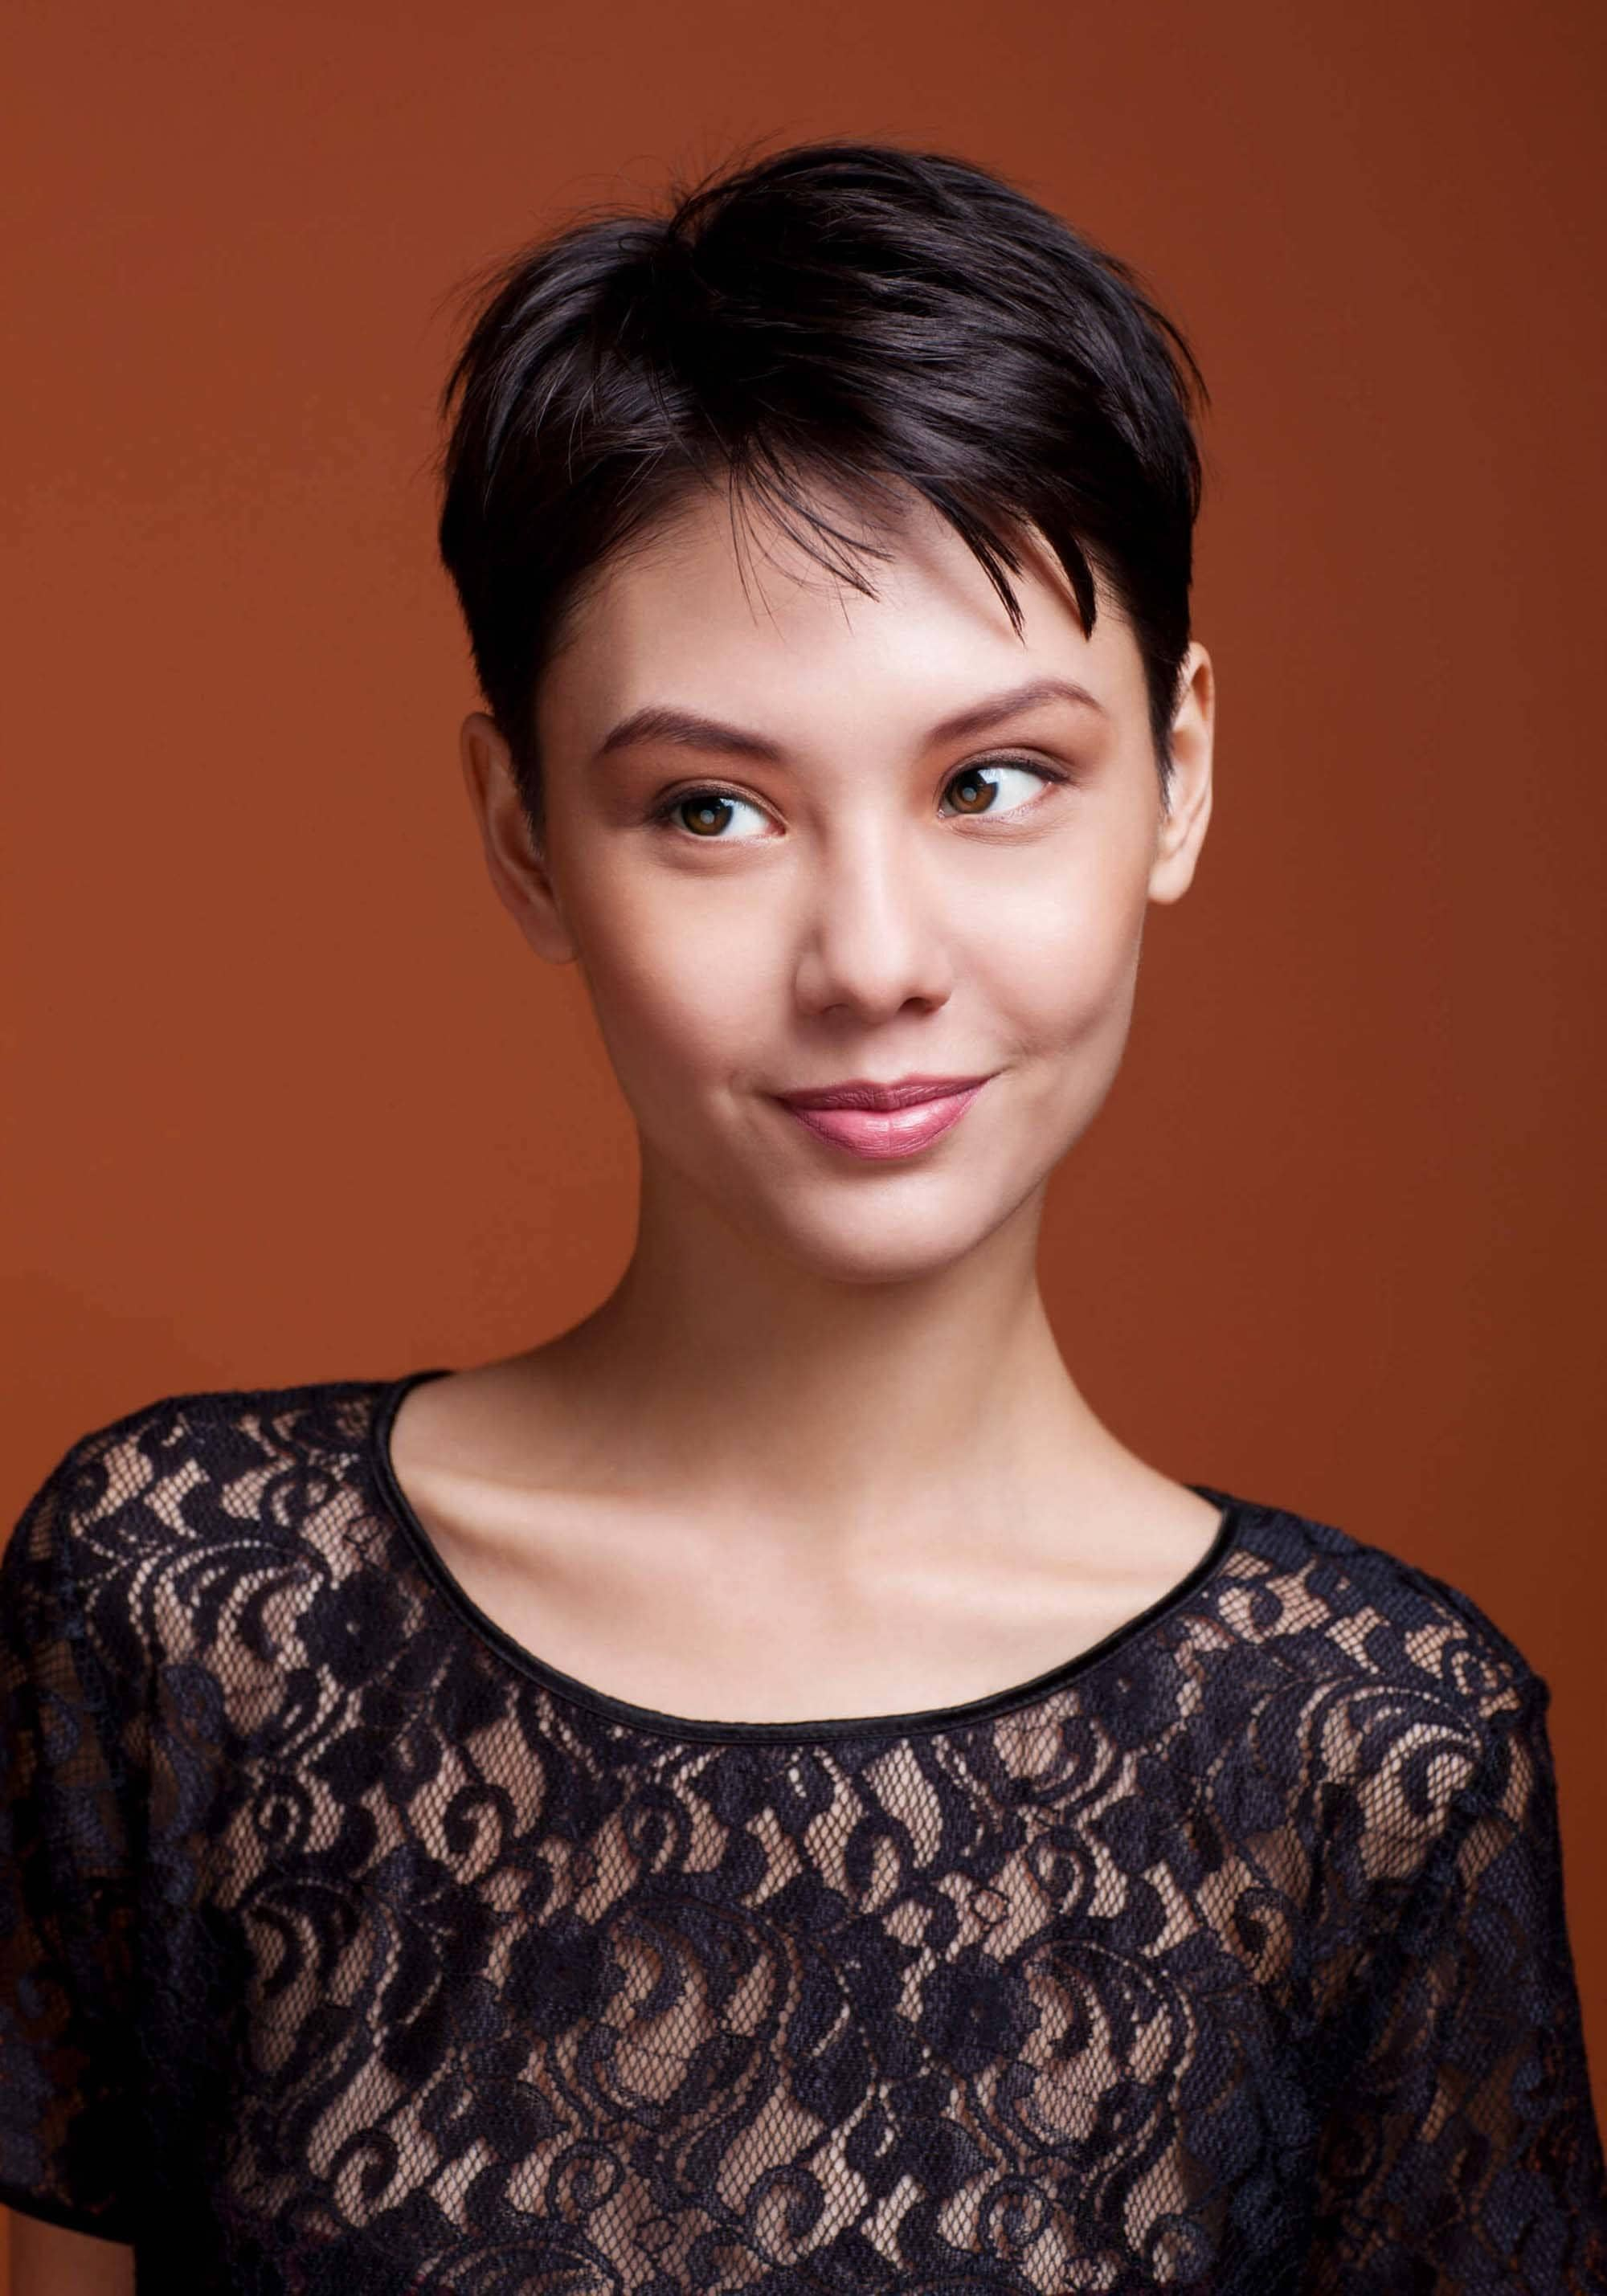 Haircuts for rainy season: Asian woman with a shirt pixie, wearing a black lace top